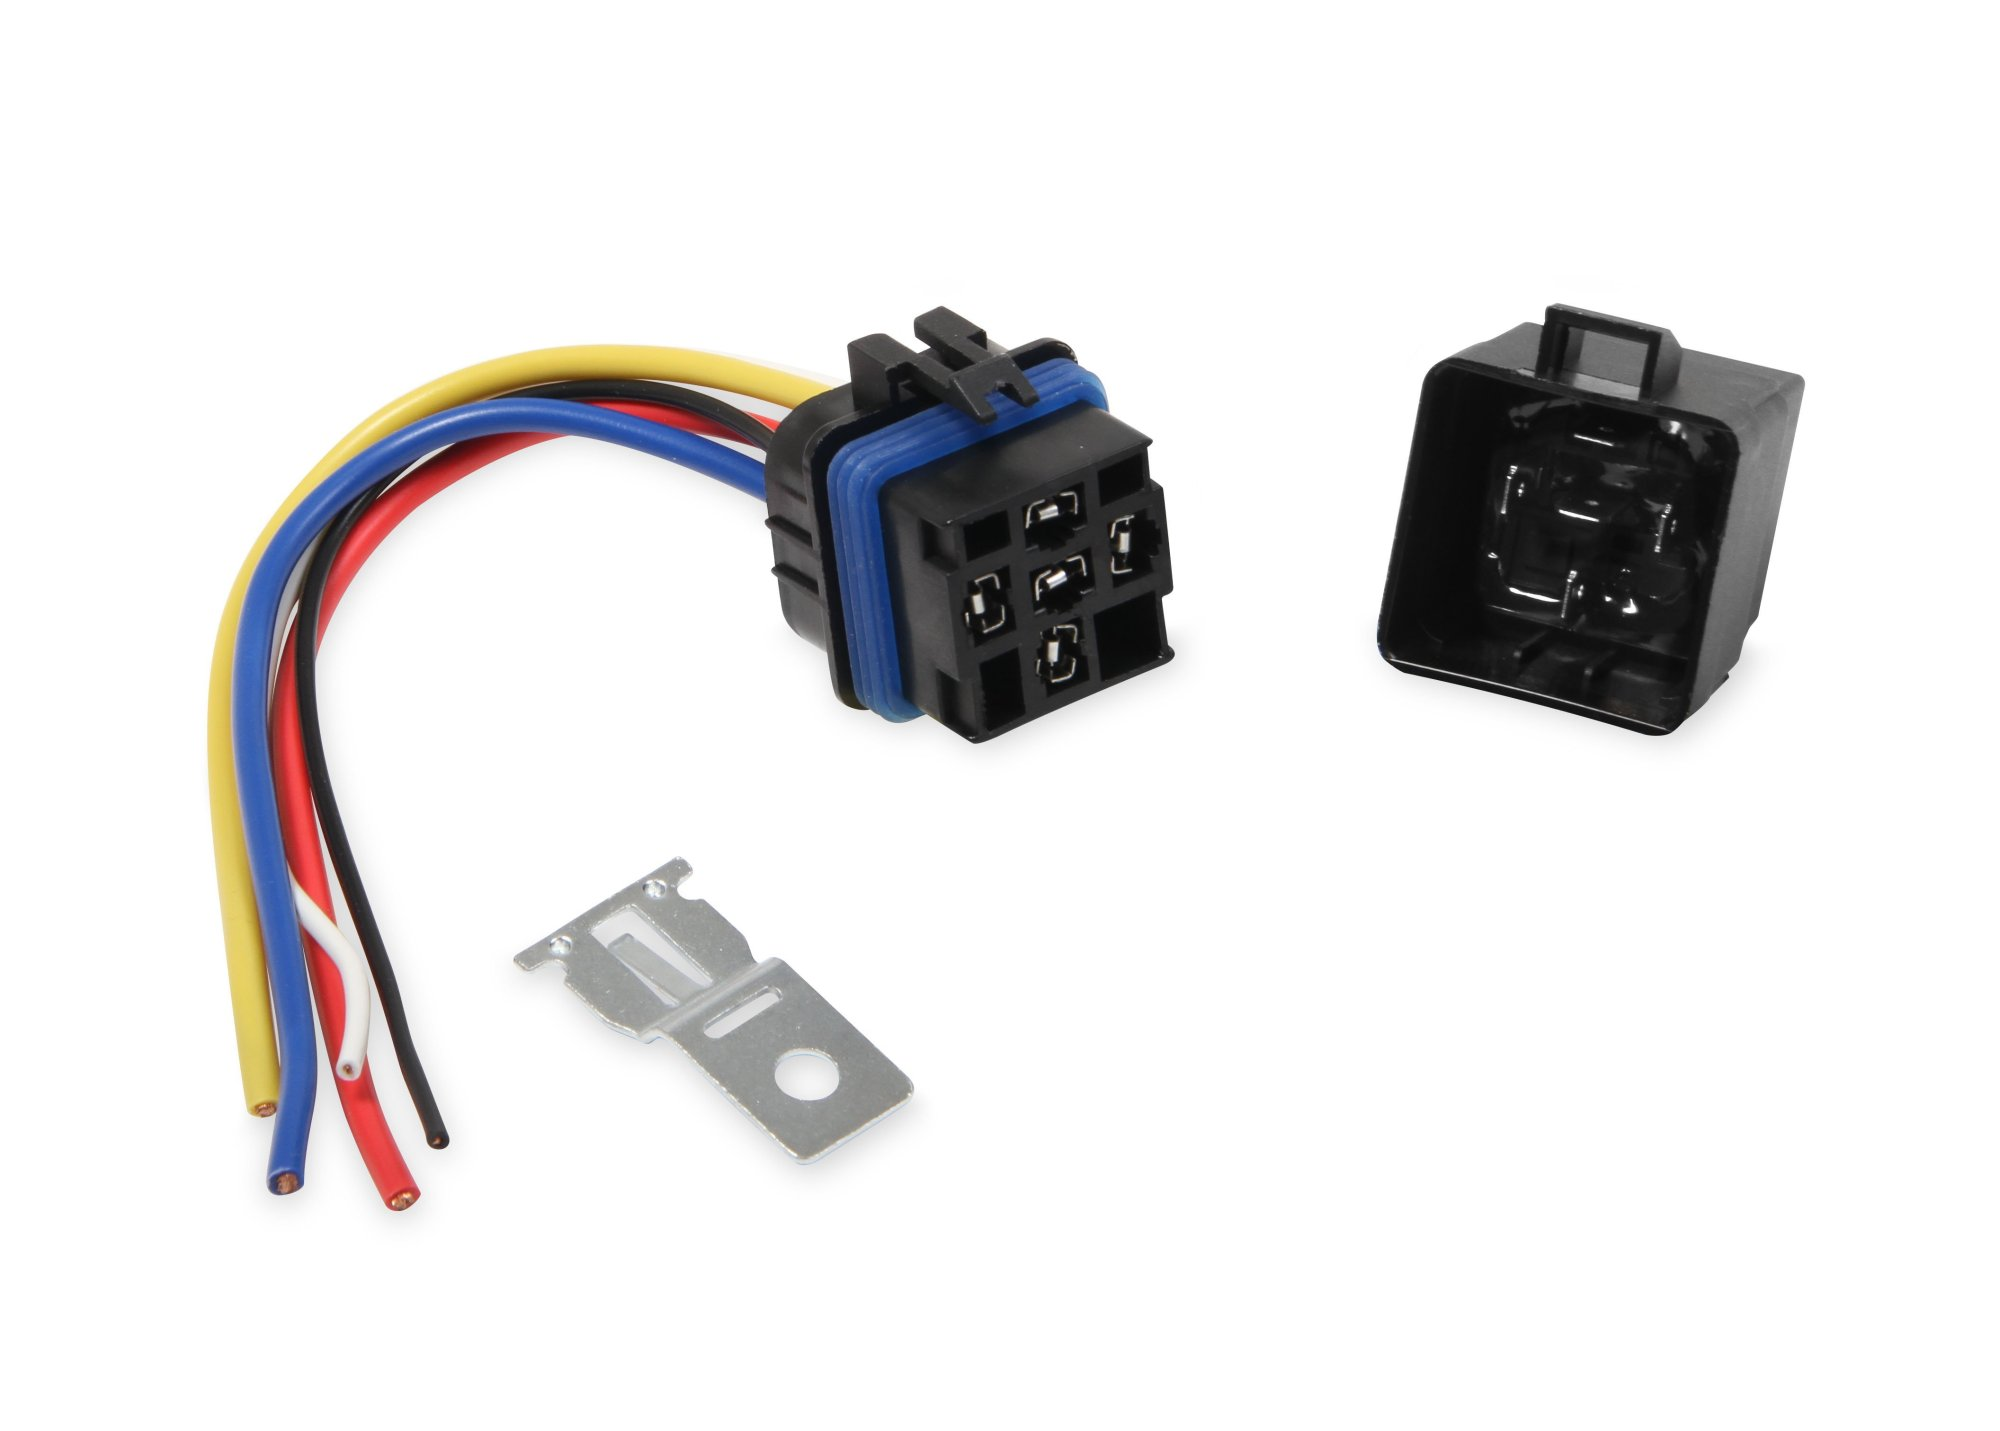 hight resolution of 89611 msd spst relay w socket harness image